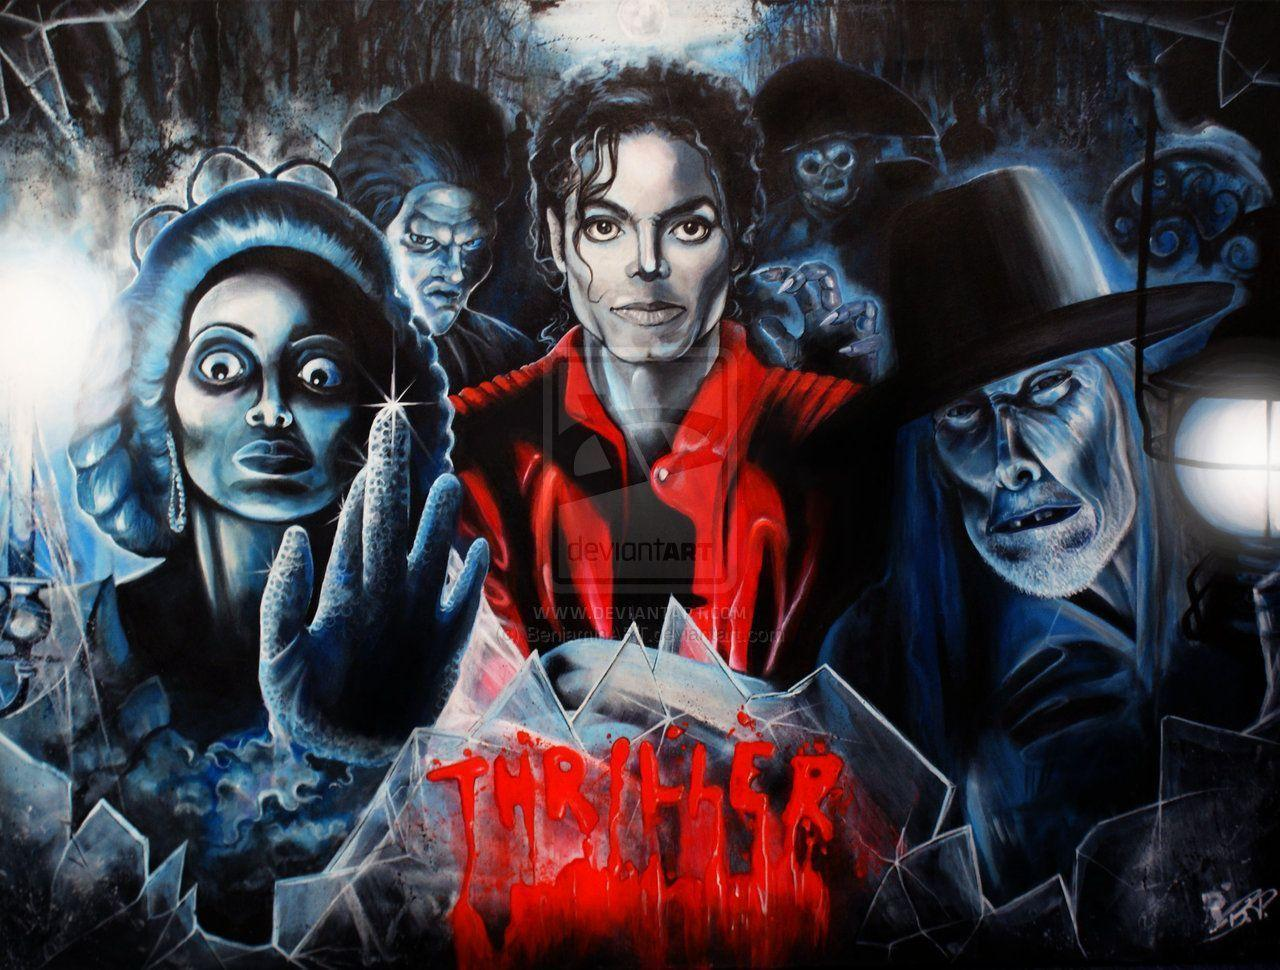 Michael Jackson Thriller Wallpapers Wallpaper Cave